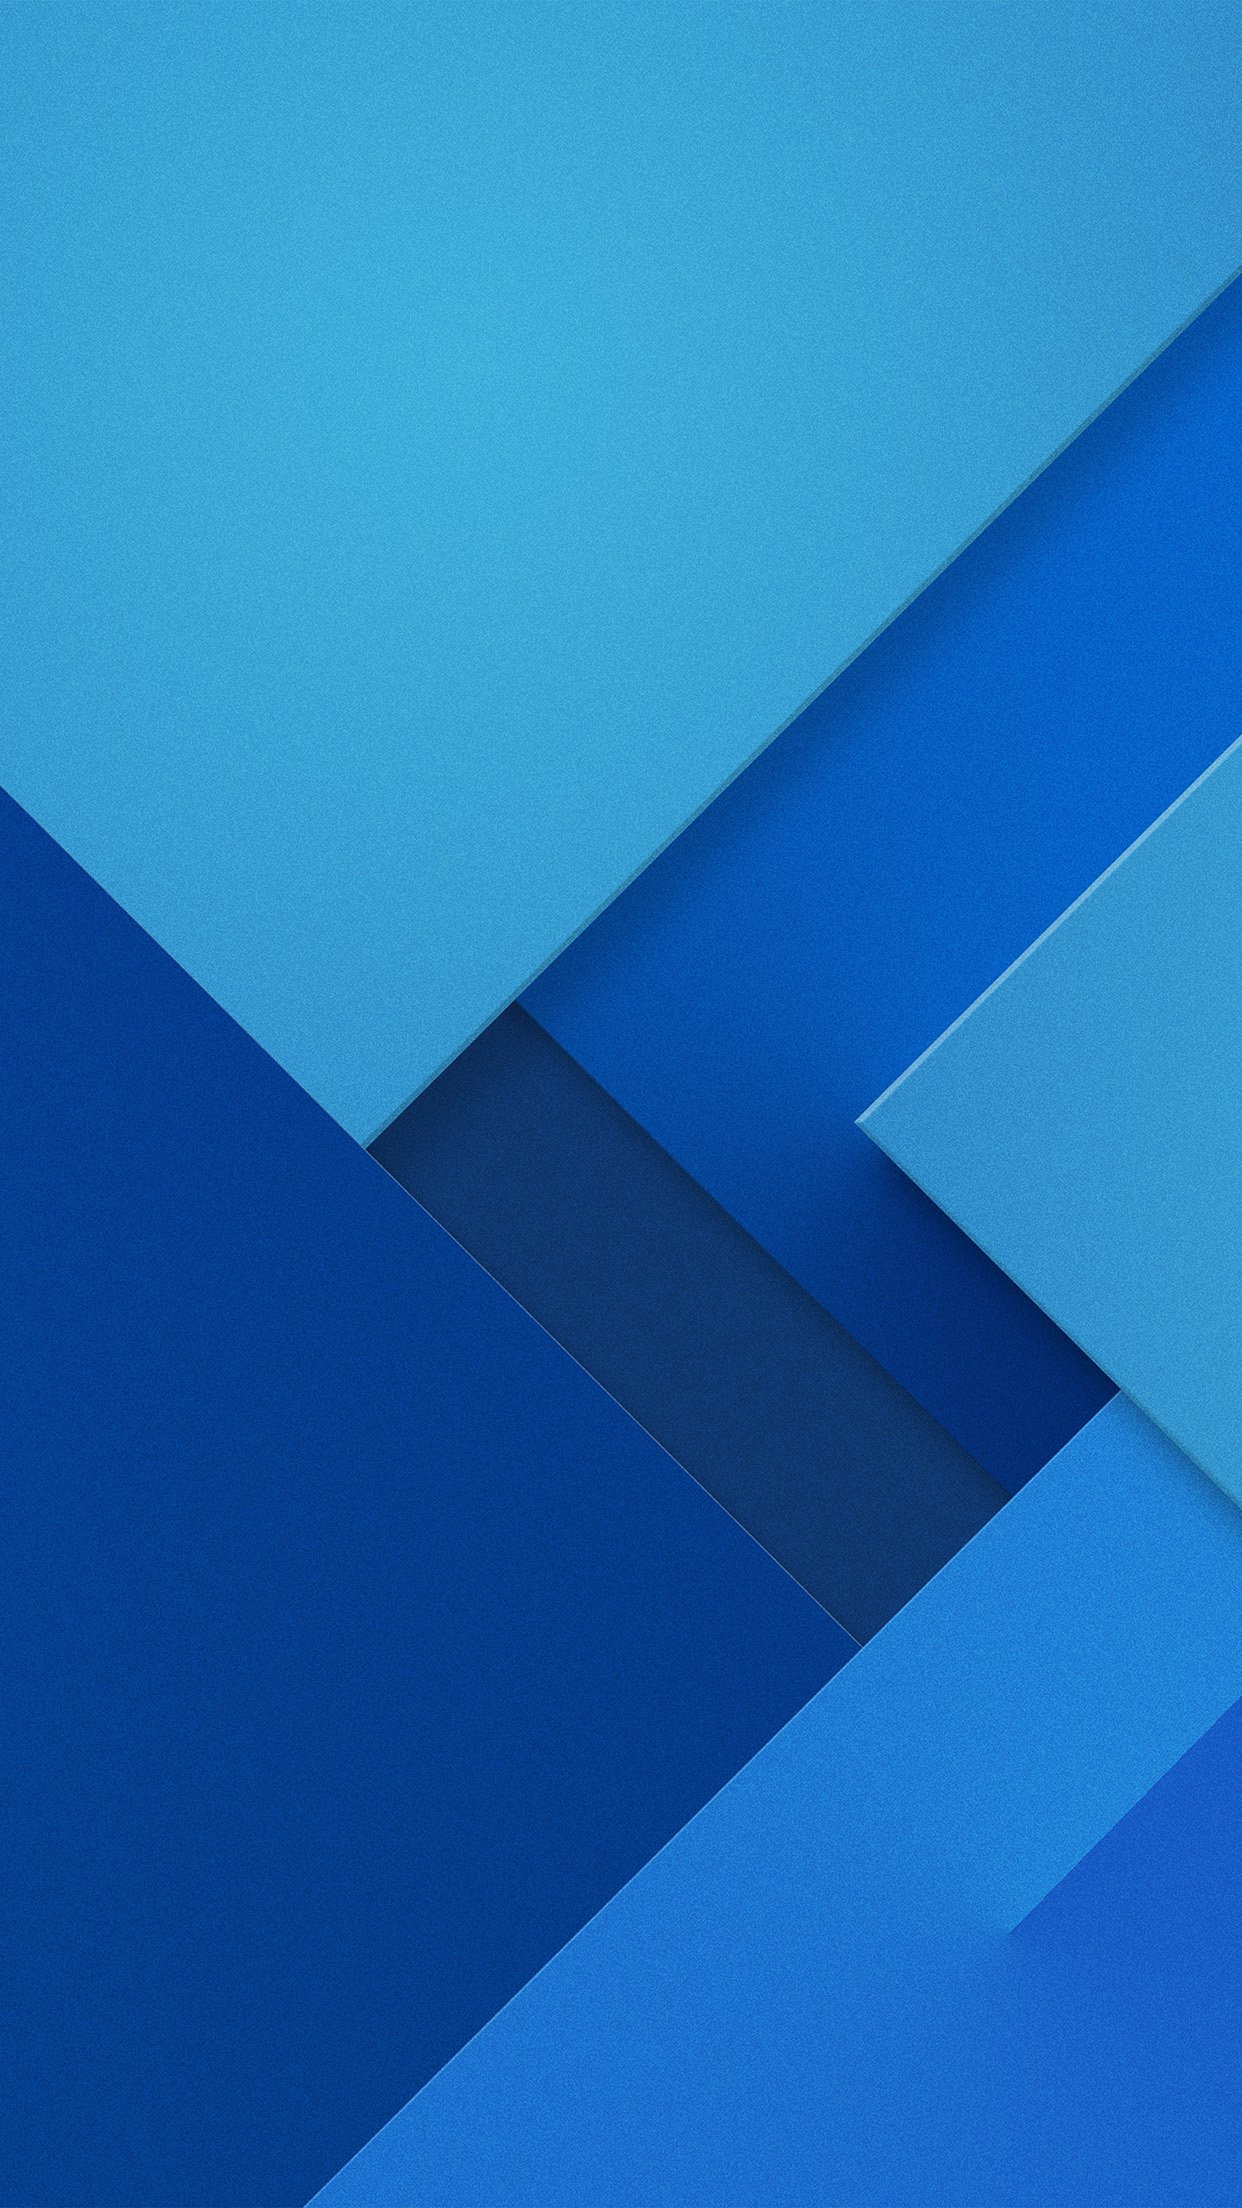 Samsung Galaxy 7 Edge Blue Abstract Pattern Android Wallpaper